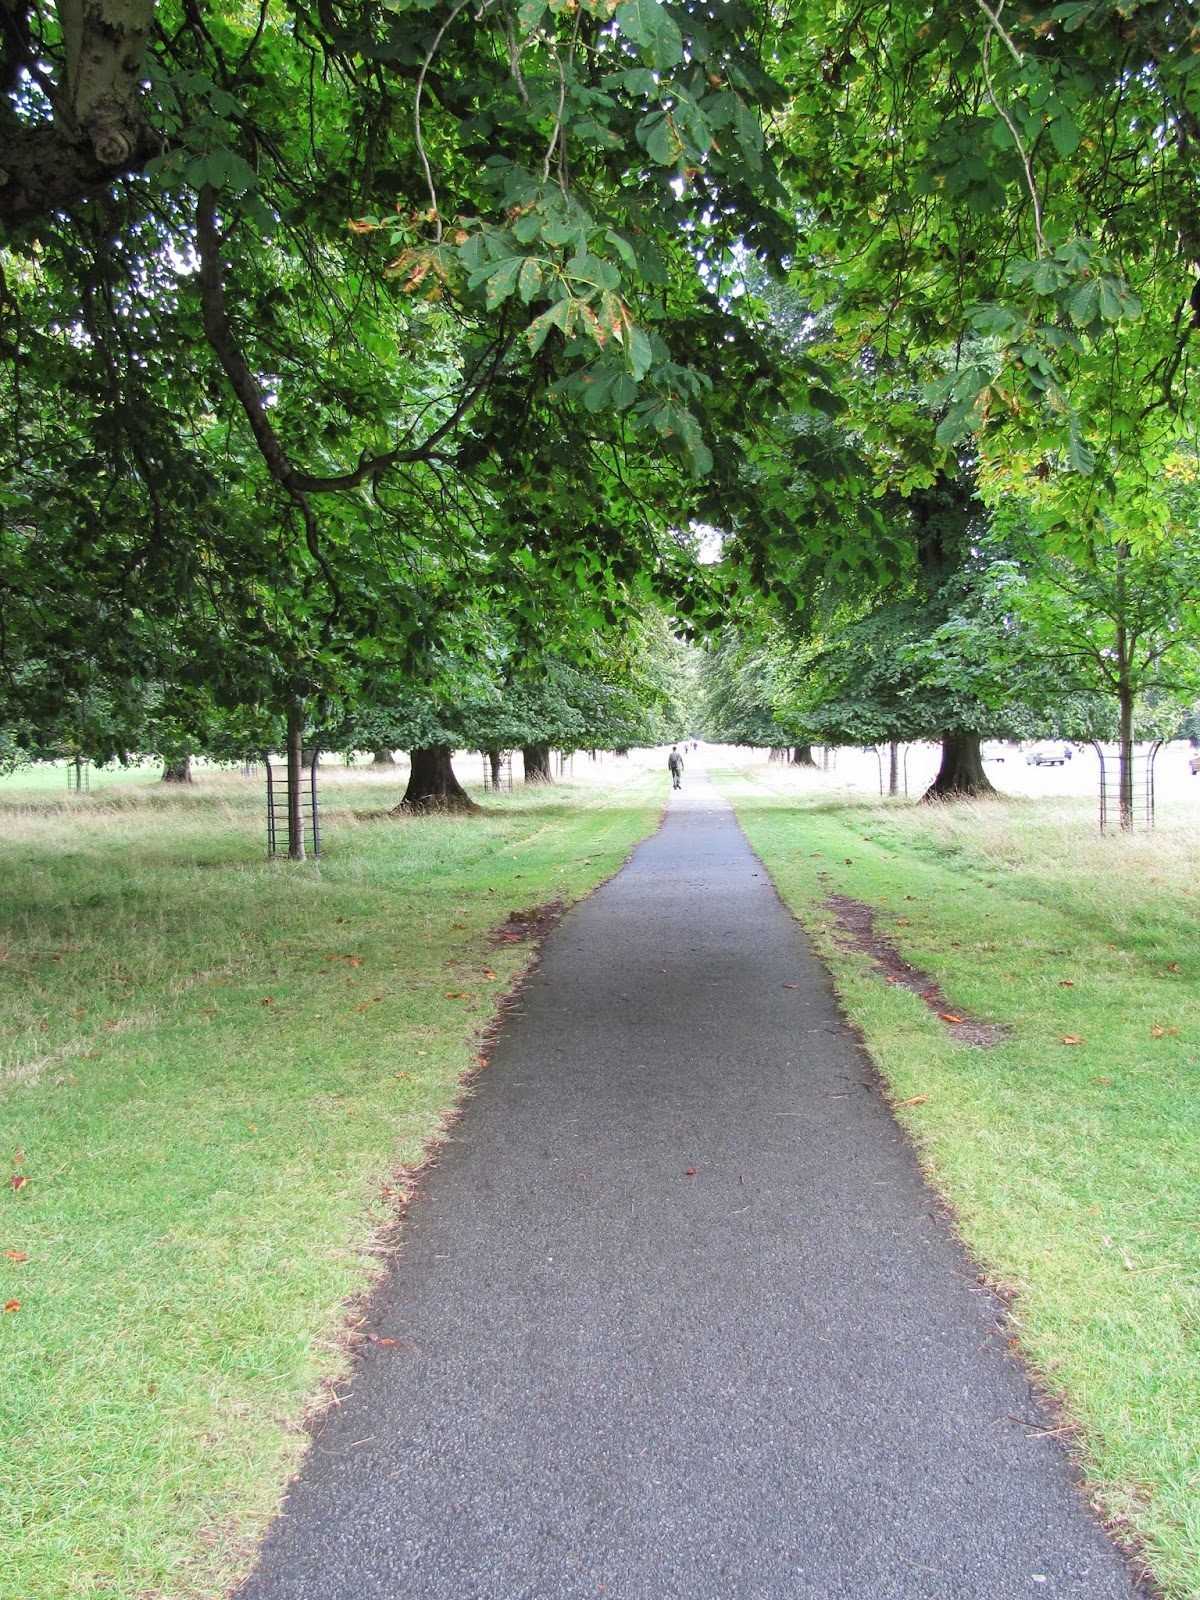 A long path vanishes in the distance at Phoenix Park, Dublin, Ireland